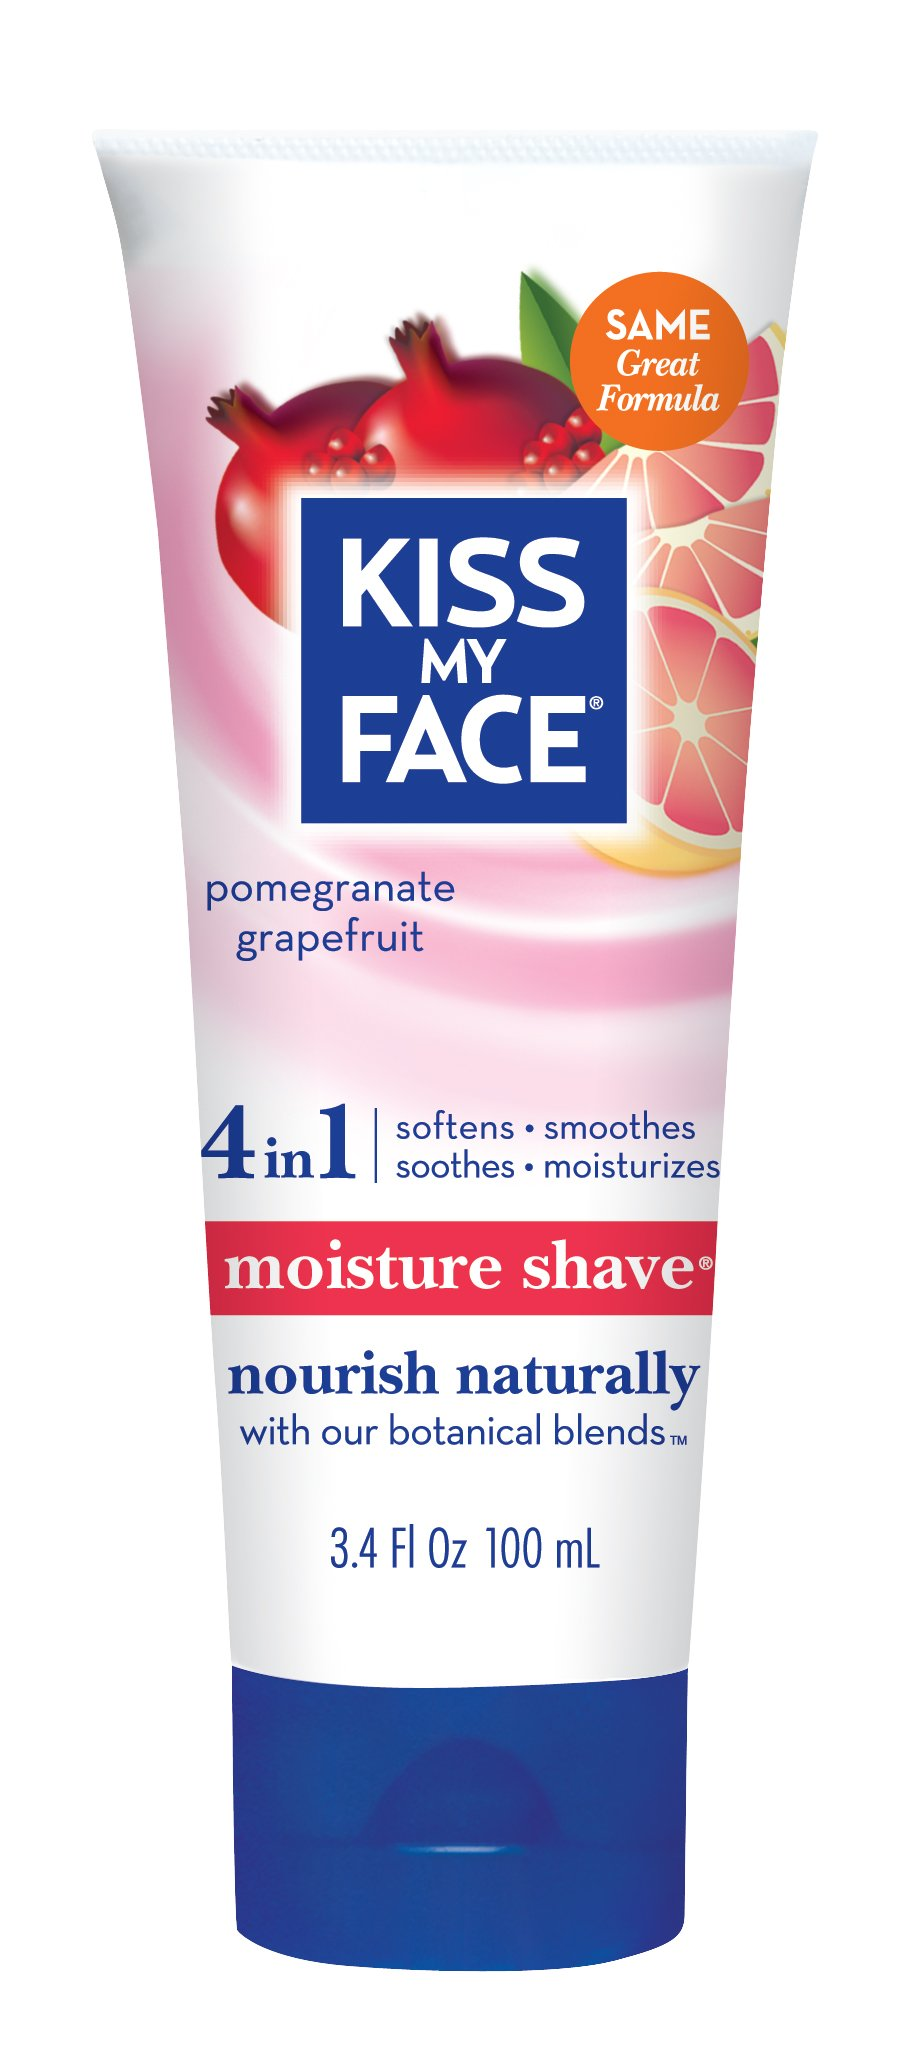 Kiss My Face Moisture Shave Shaving Cream, Pomegranate Grapefruit, 3.4 Ounce Travel Size